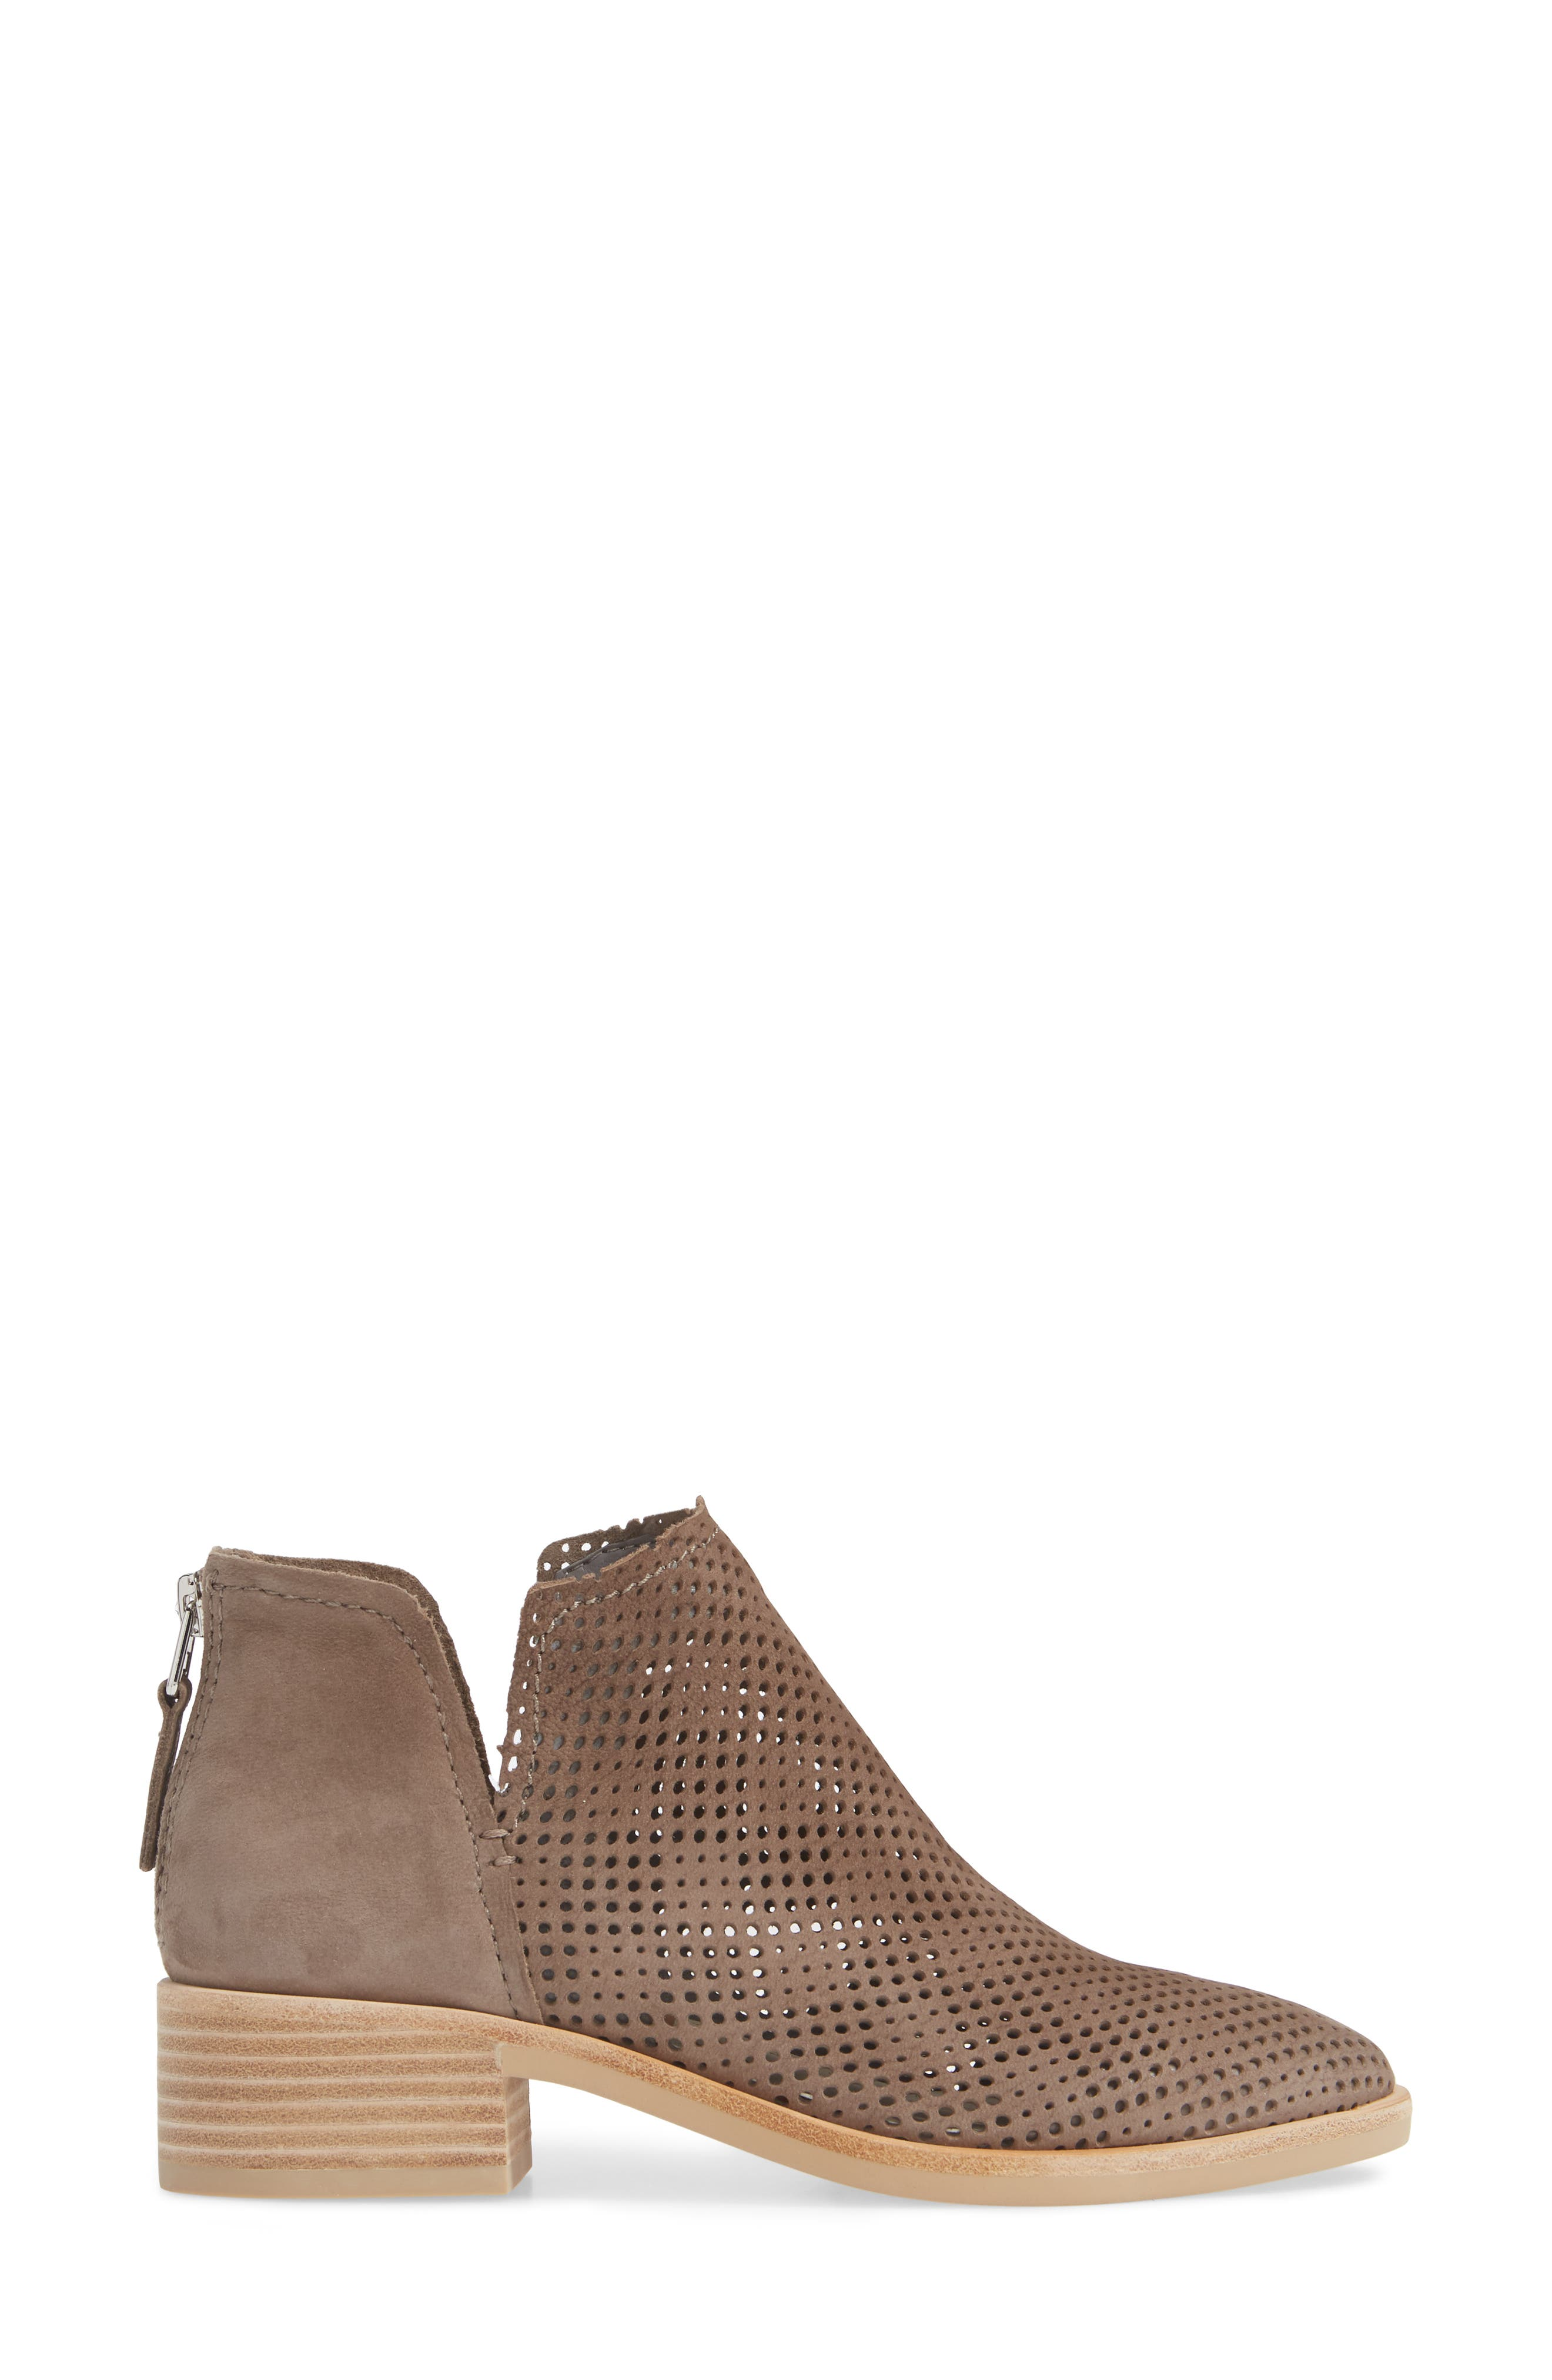 DOLCE VITA,                             Tauris Perforated Bootie,                             Alternate thumbnail 3, color,                             SMOKE